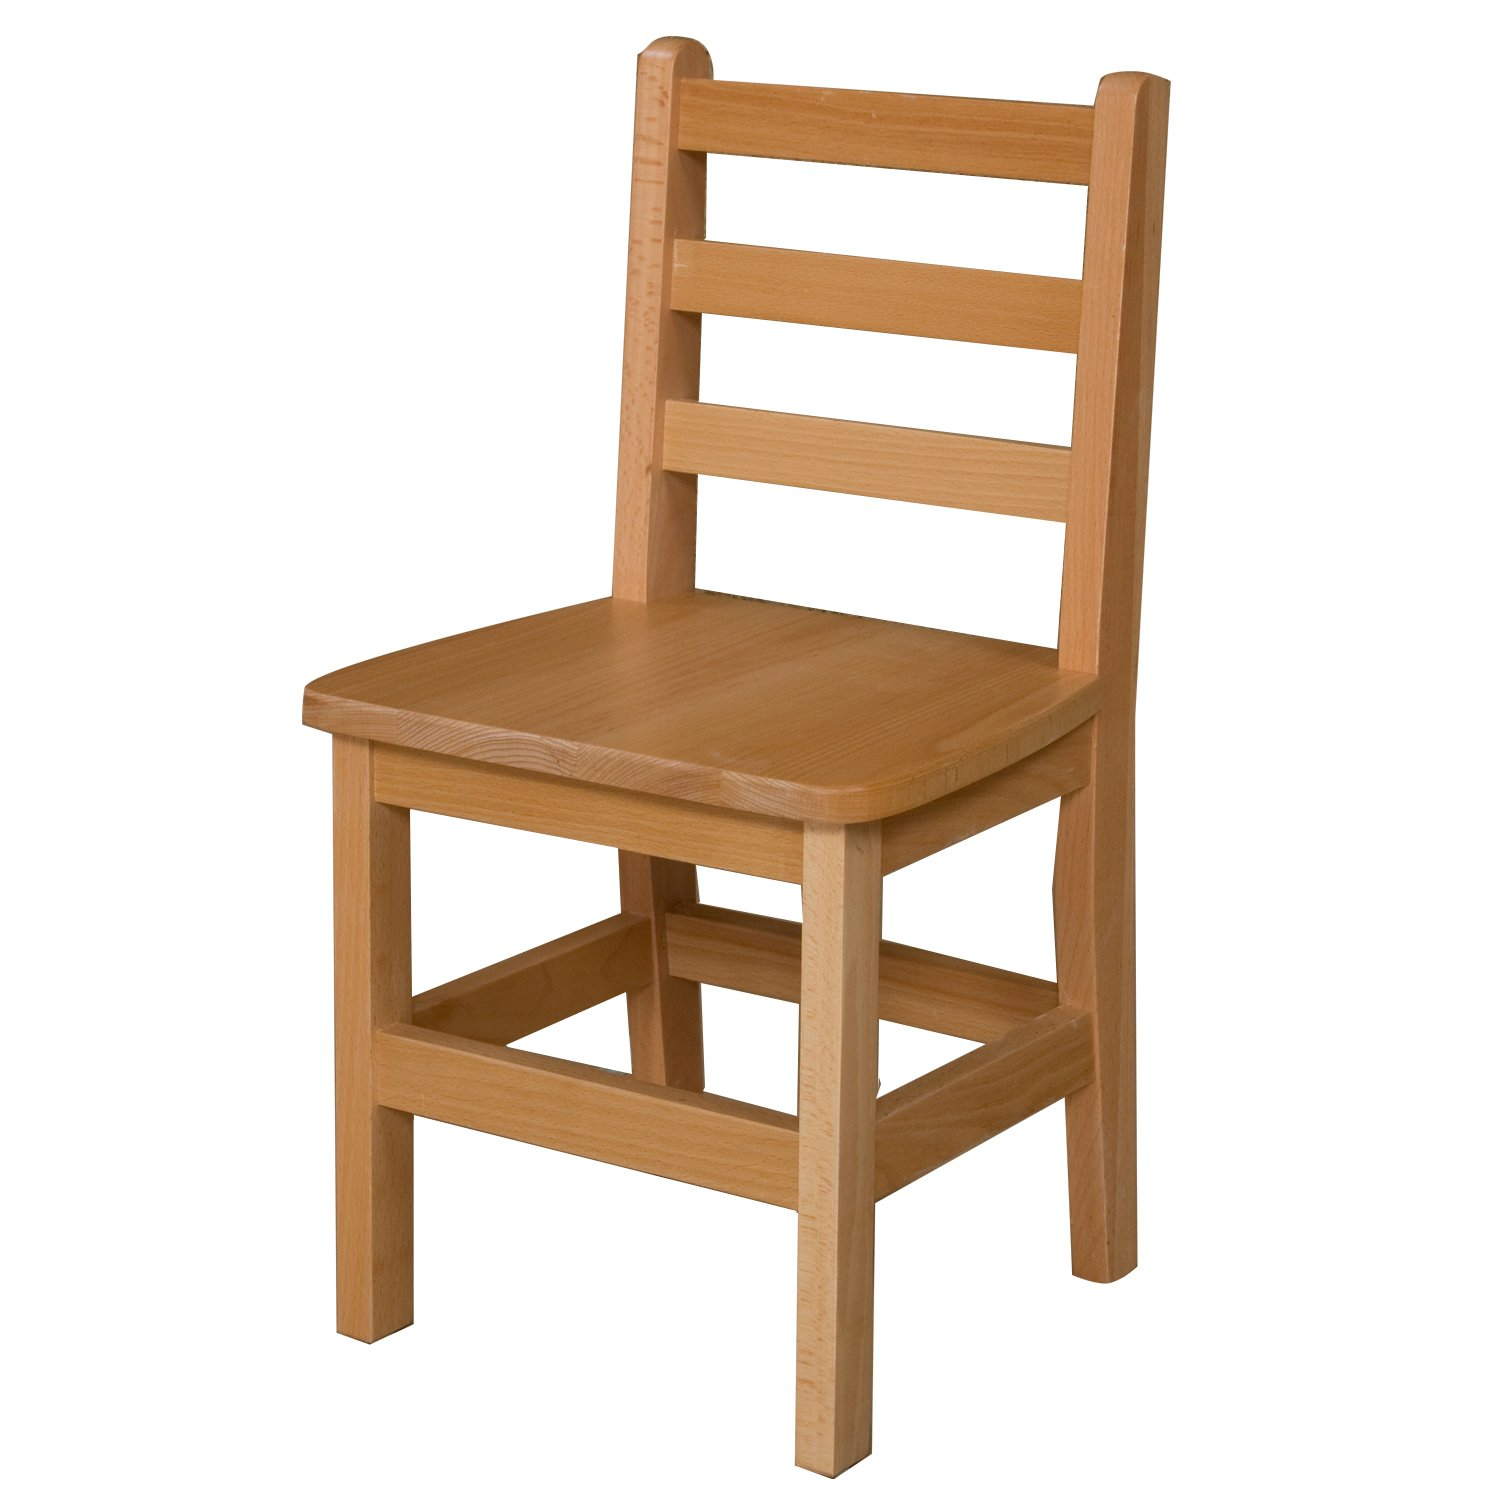 Wood Designs WD81401 Child's Chair, 14'' Height Seat, (1) Per Carton